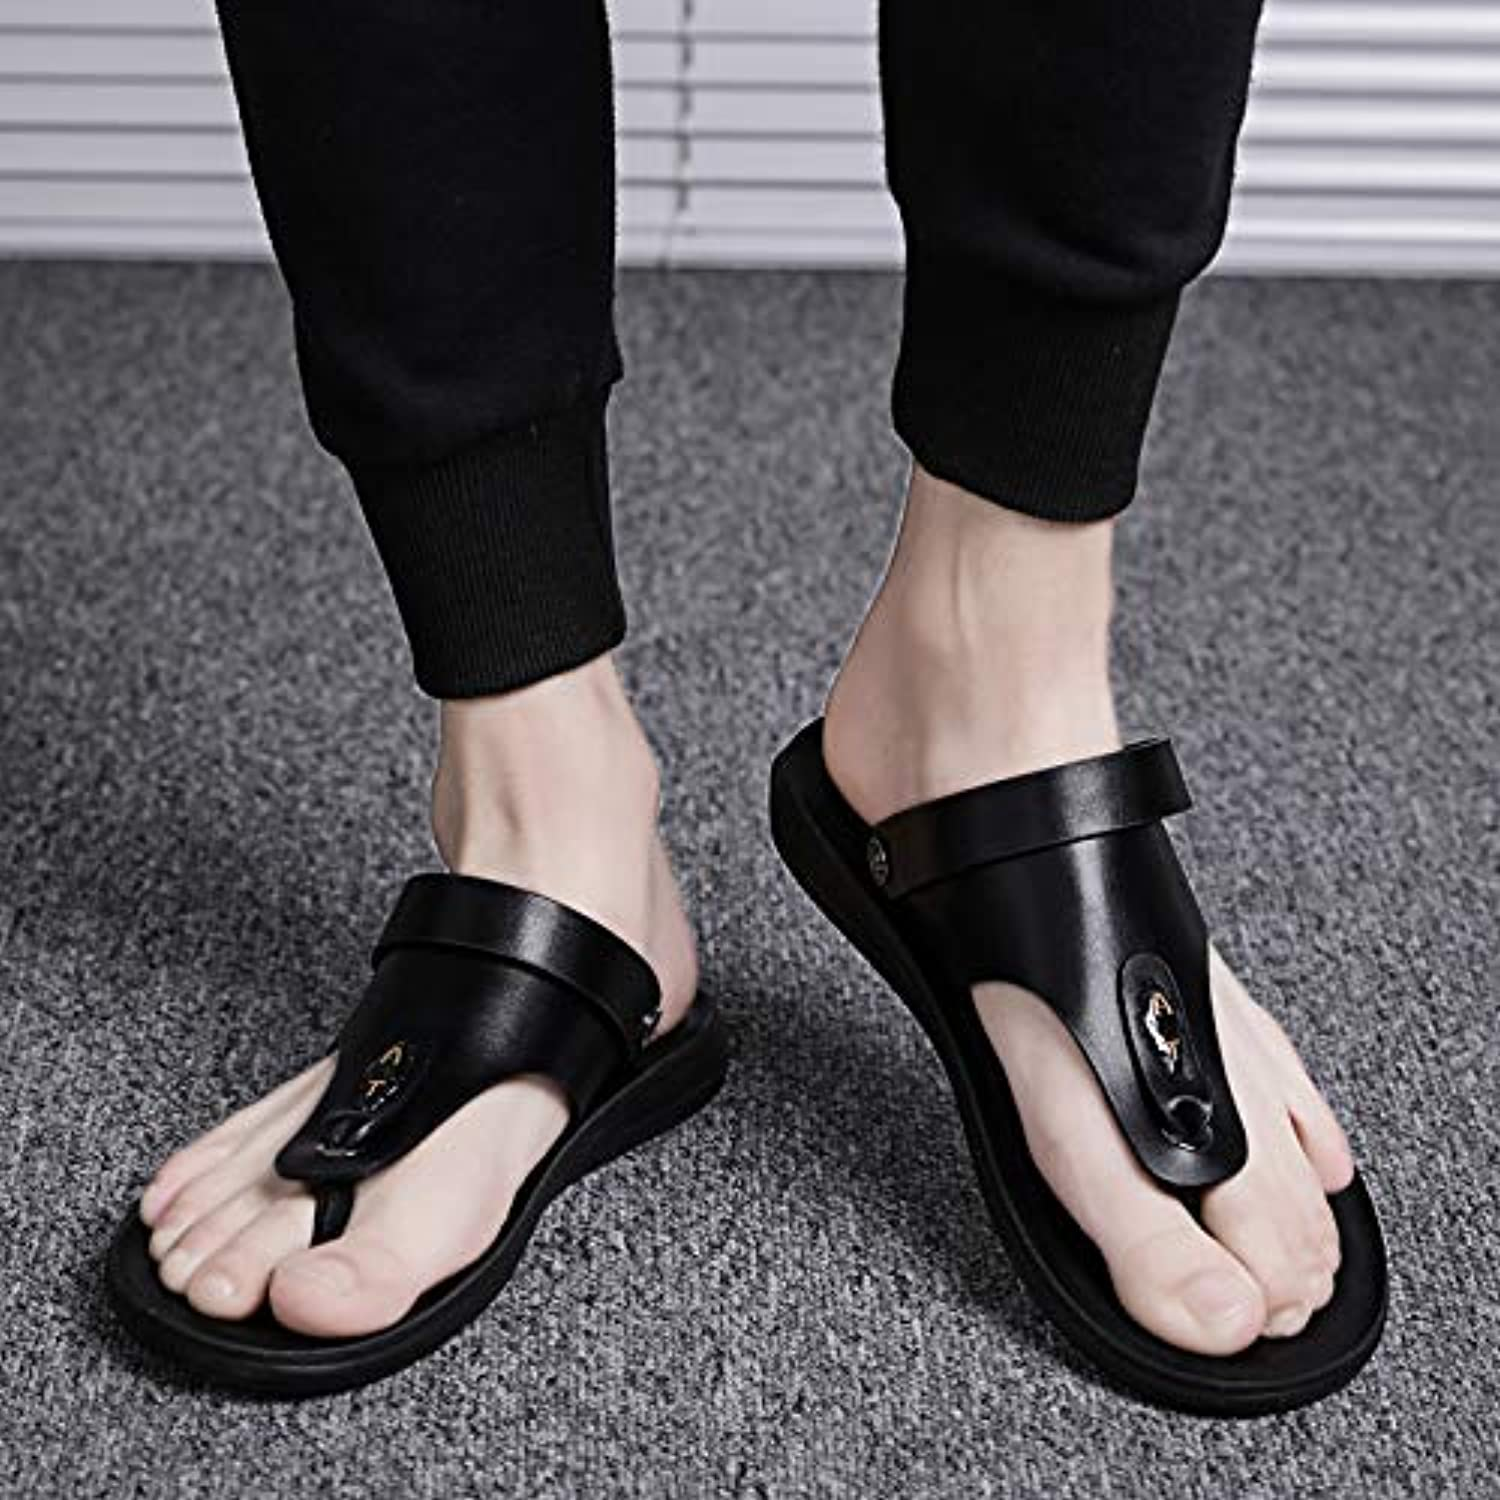 Shukun Men's flip flops Summer Men'S Sandals Slippers Flow Flip Flops Men'S Non-Slip Beach shoes Toe Sandals Men'S Dual-Use